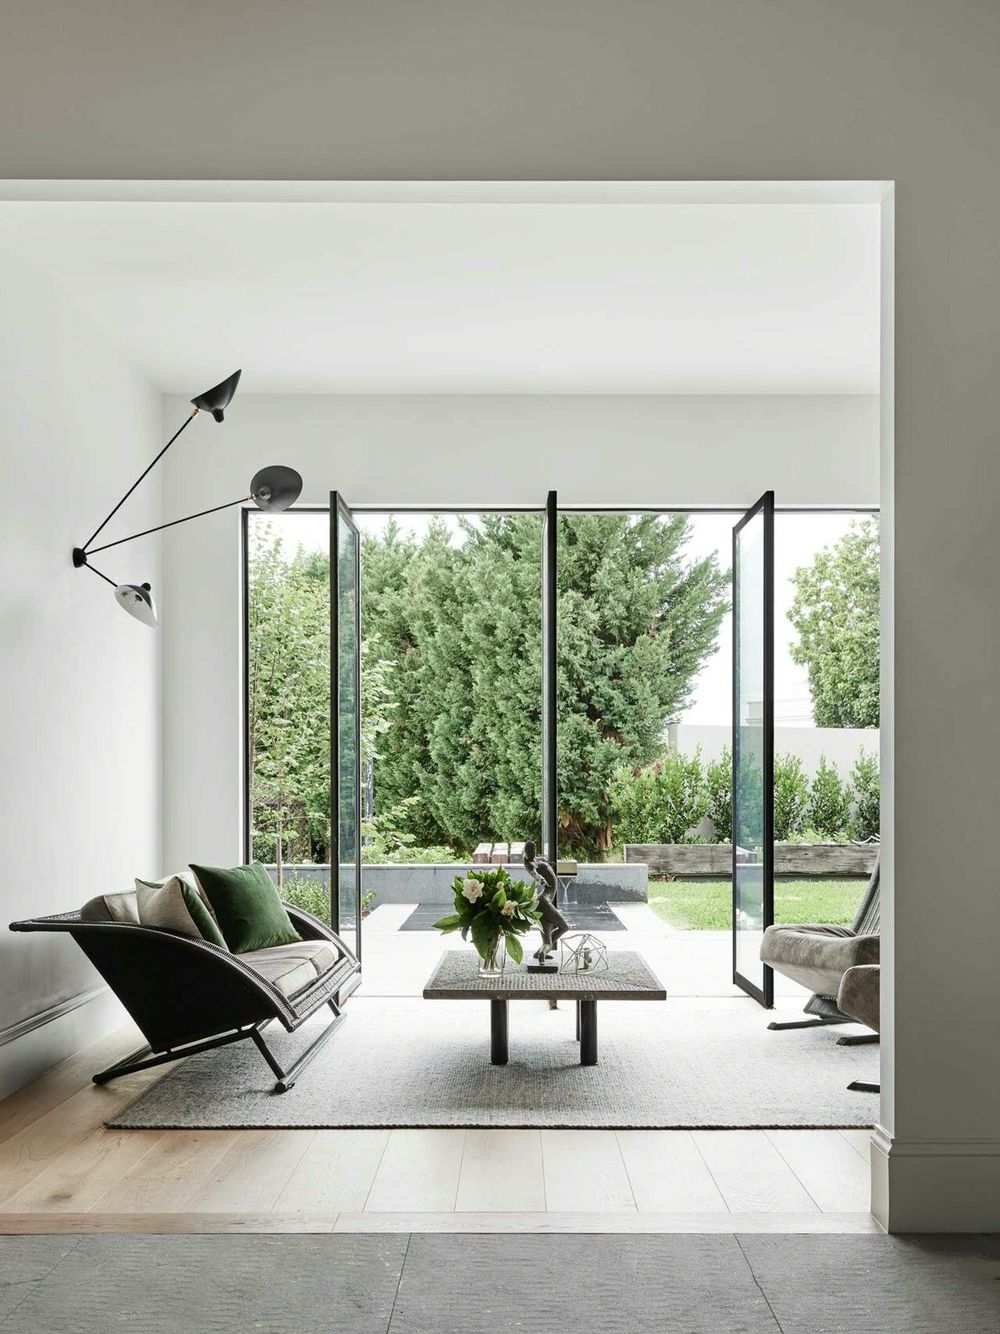 Glass Door Designs For Living Room Delectable Pinoscar Racso On Interieur & Huisjes  Pinterest  Living Decorating Design